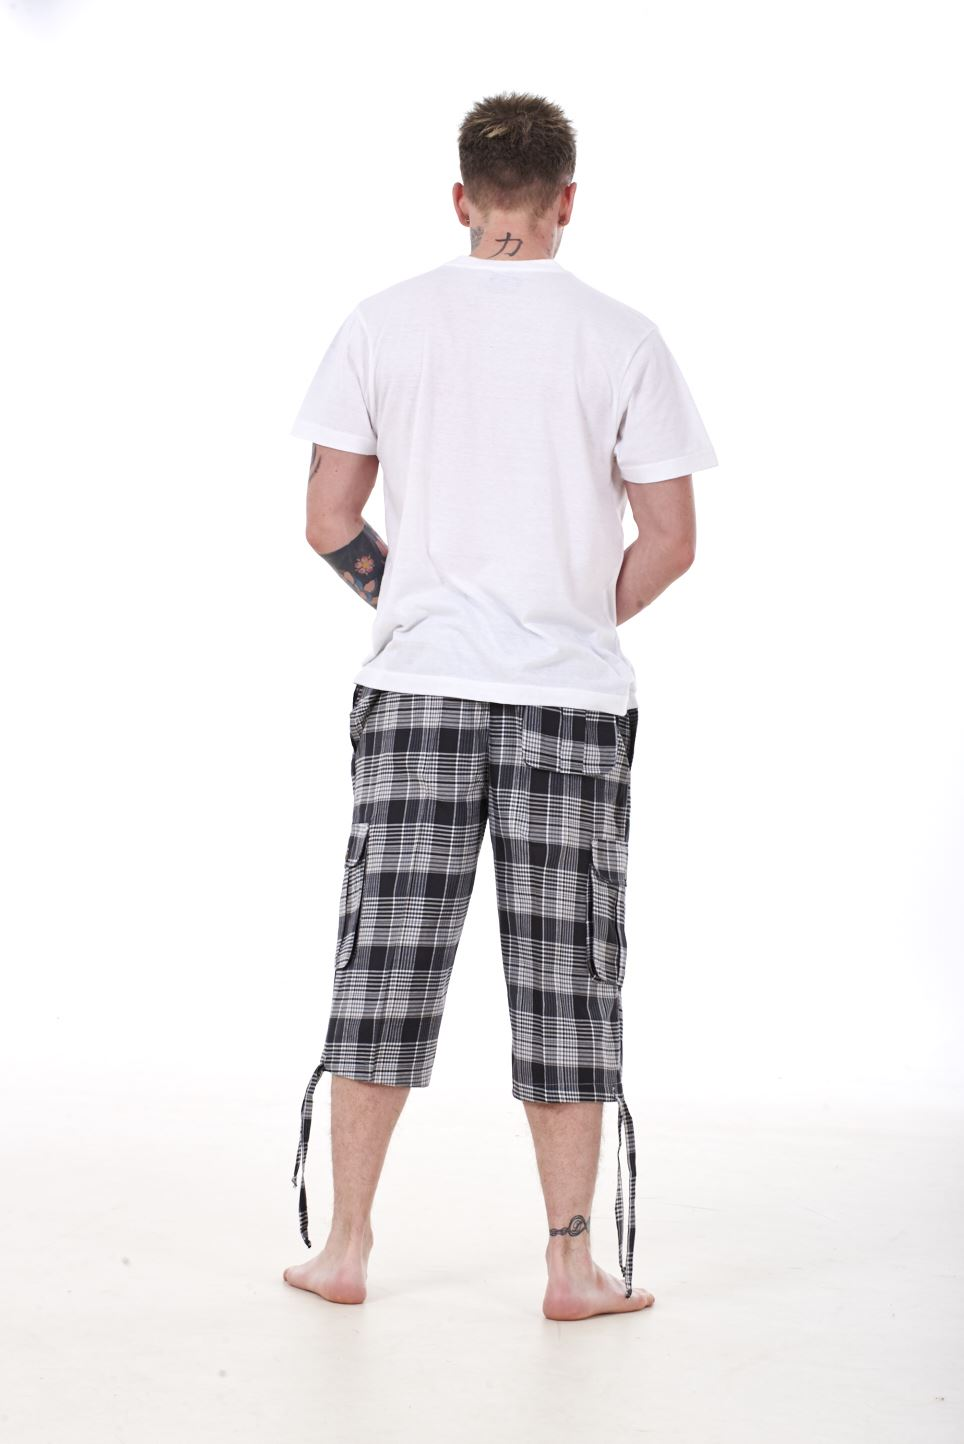 Mens Check Shorts 3 4 Length By Malay Apparel Cotton Blend